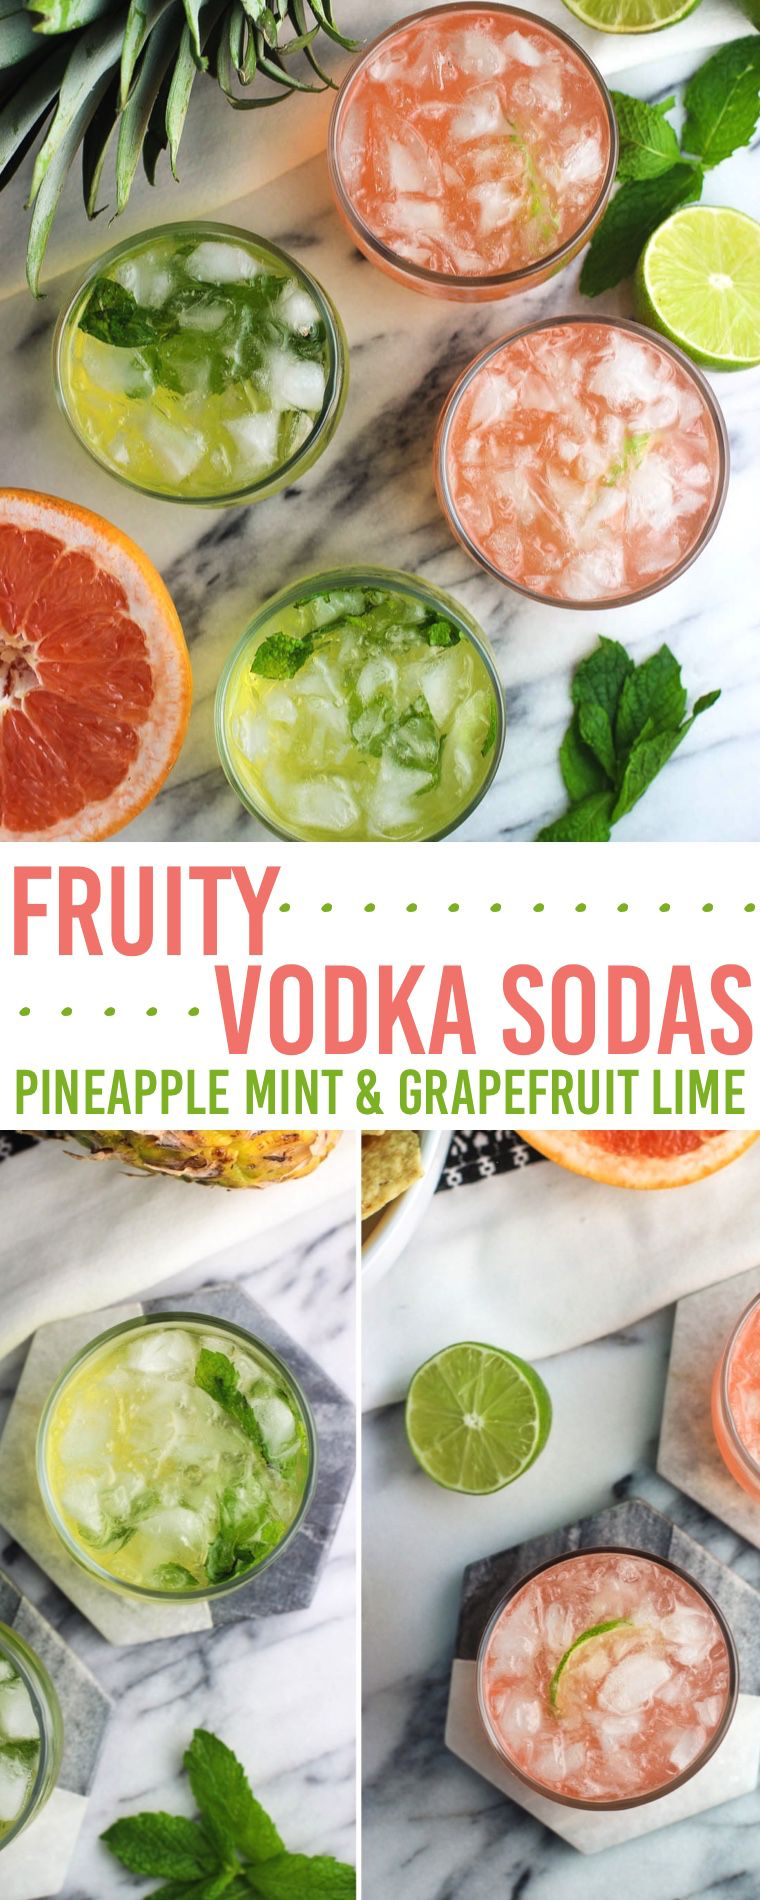 Fruity Vodka Sodas Are An Easy Summer Tail Recipe Perfect For Backyard Bbqs Lounging Poolside